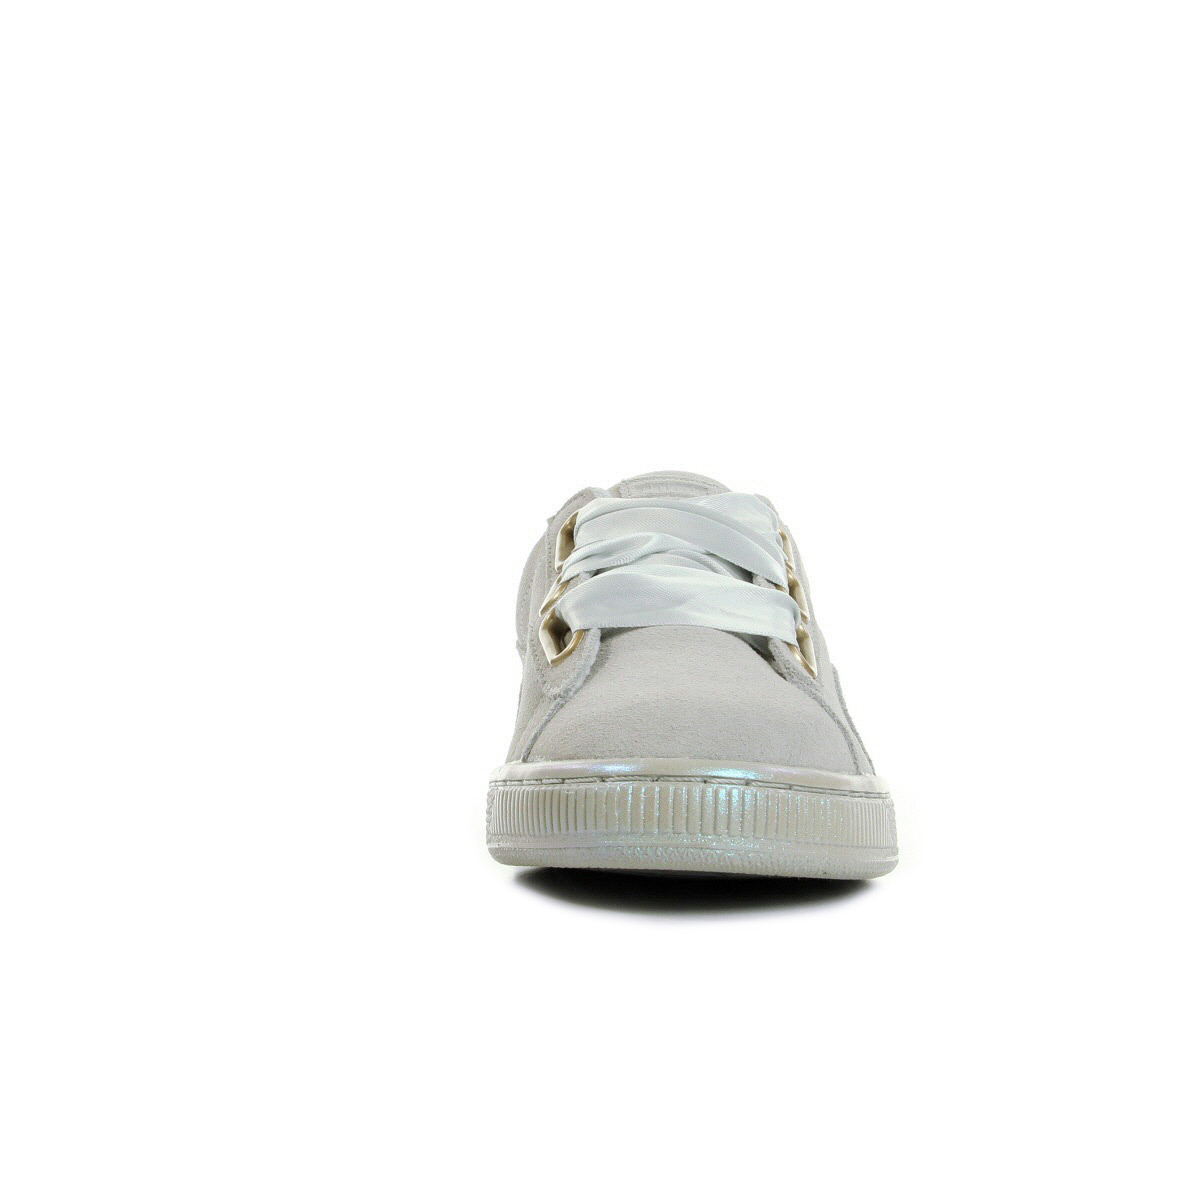 Puma Suede Heart Satin 36271402, Baskets mode femme